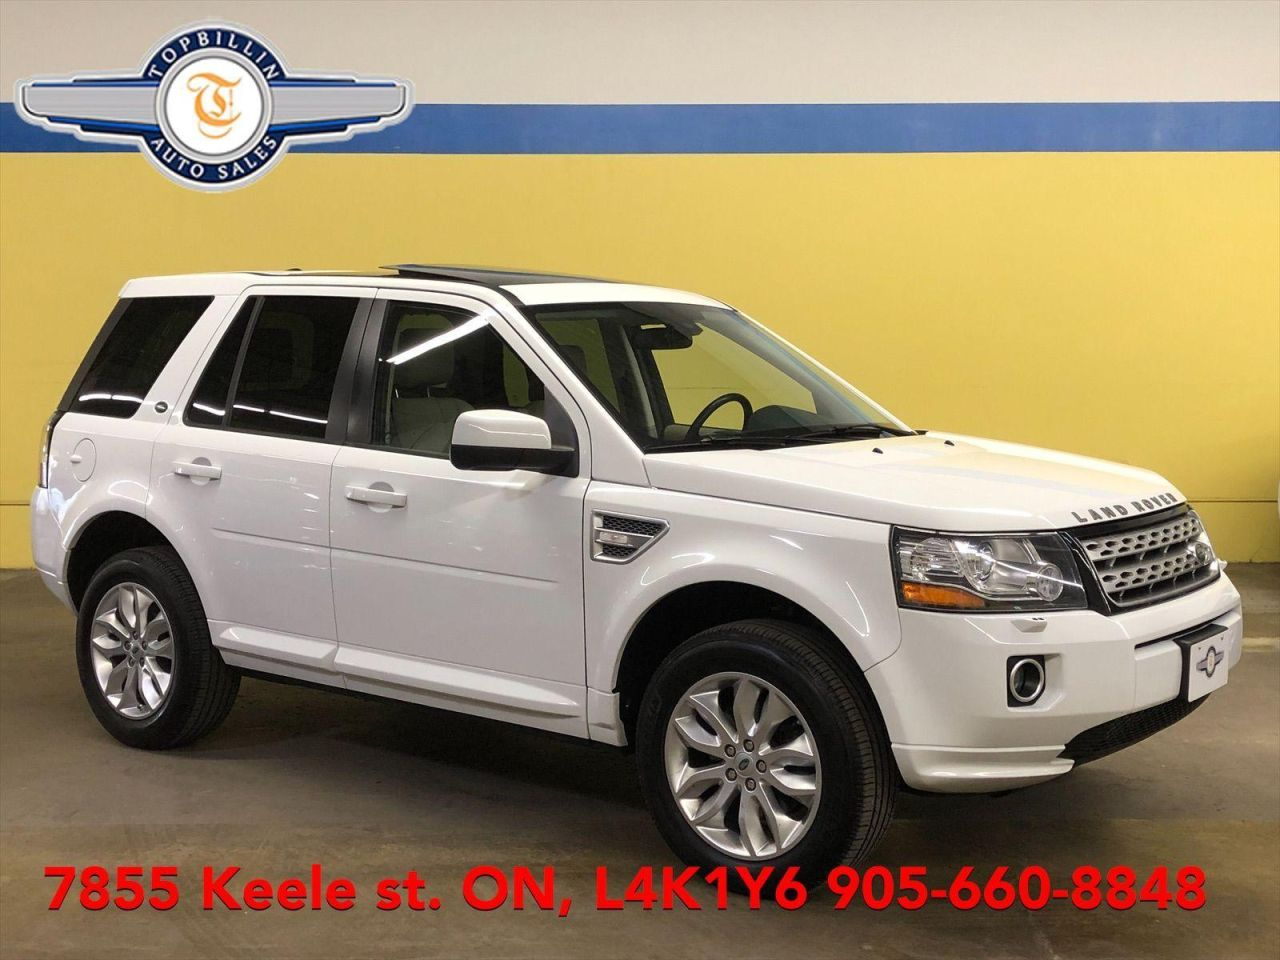 2014 Land Rover LR2 4WD, Navi, Leather, Sunroof 2 Years Warranty